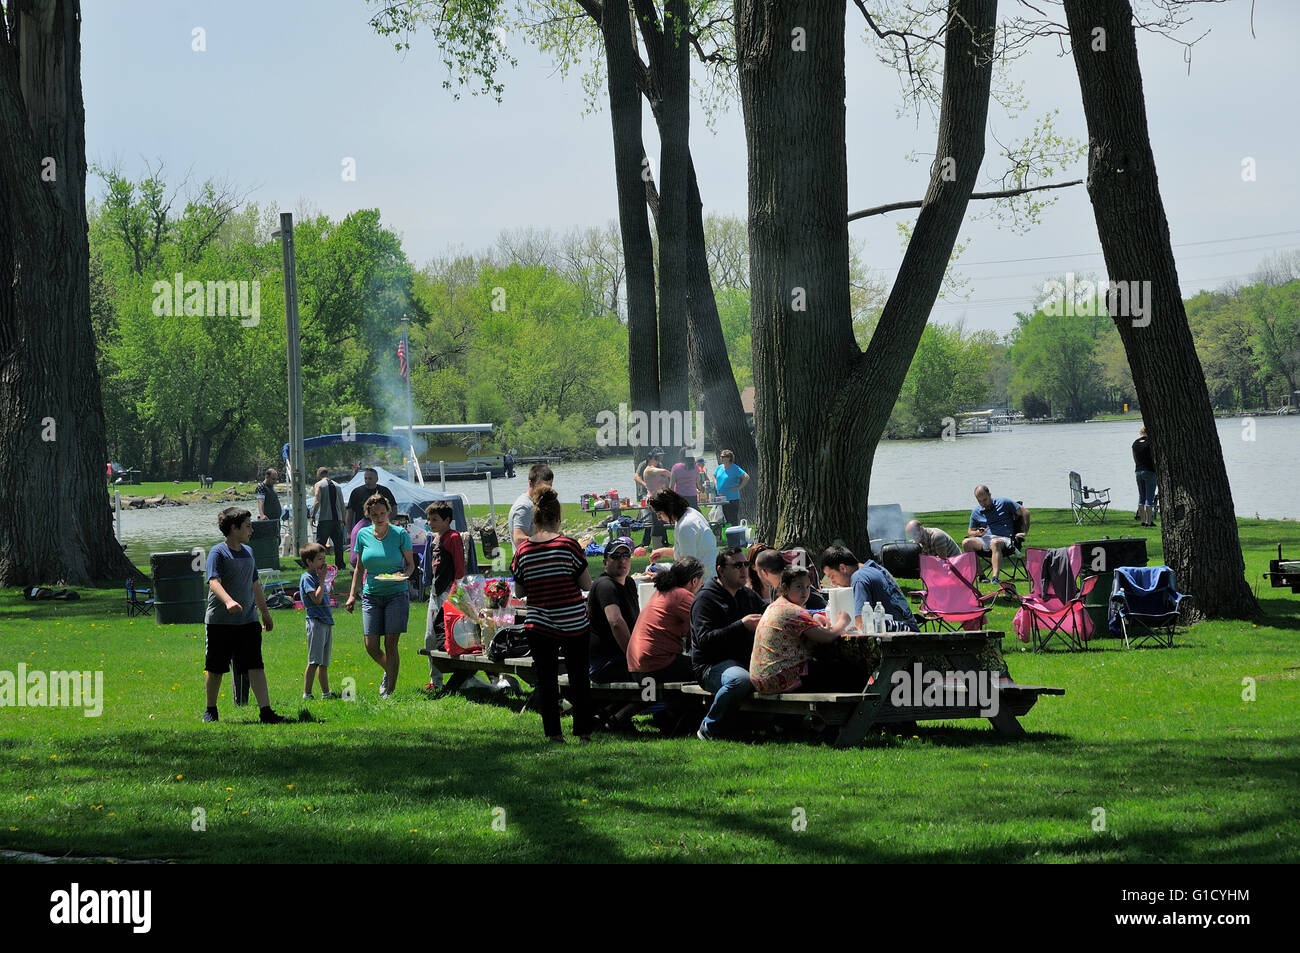 Group of people picnicking at riverside park. - Stock Image